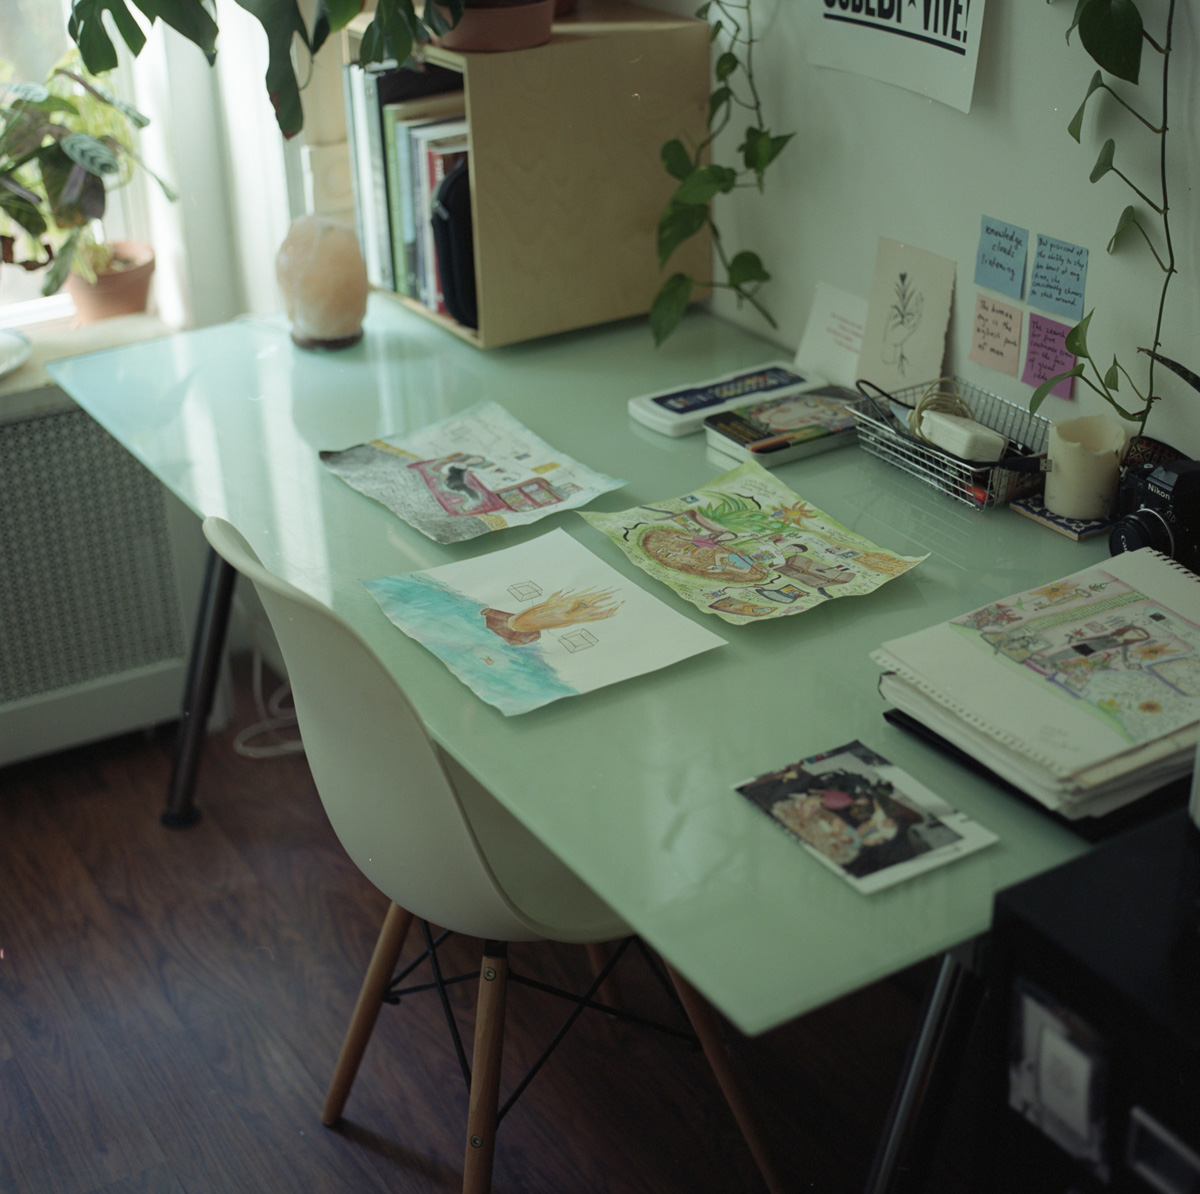 Glass desk top with three watercolors on paper and neatly organized art supplies, greenery cascading from above